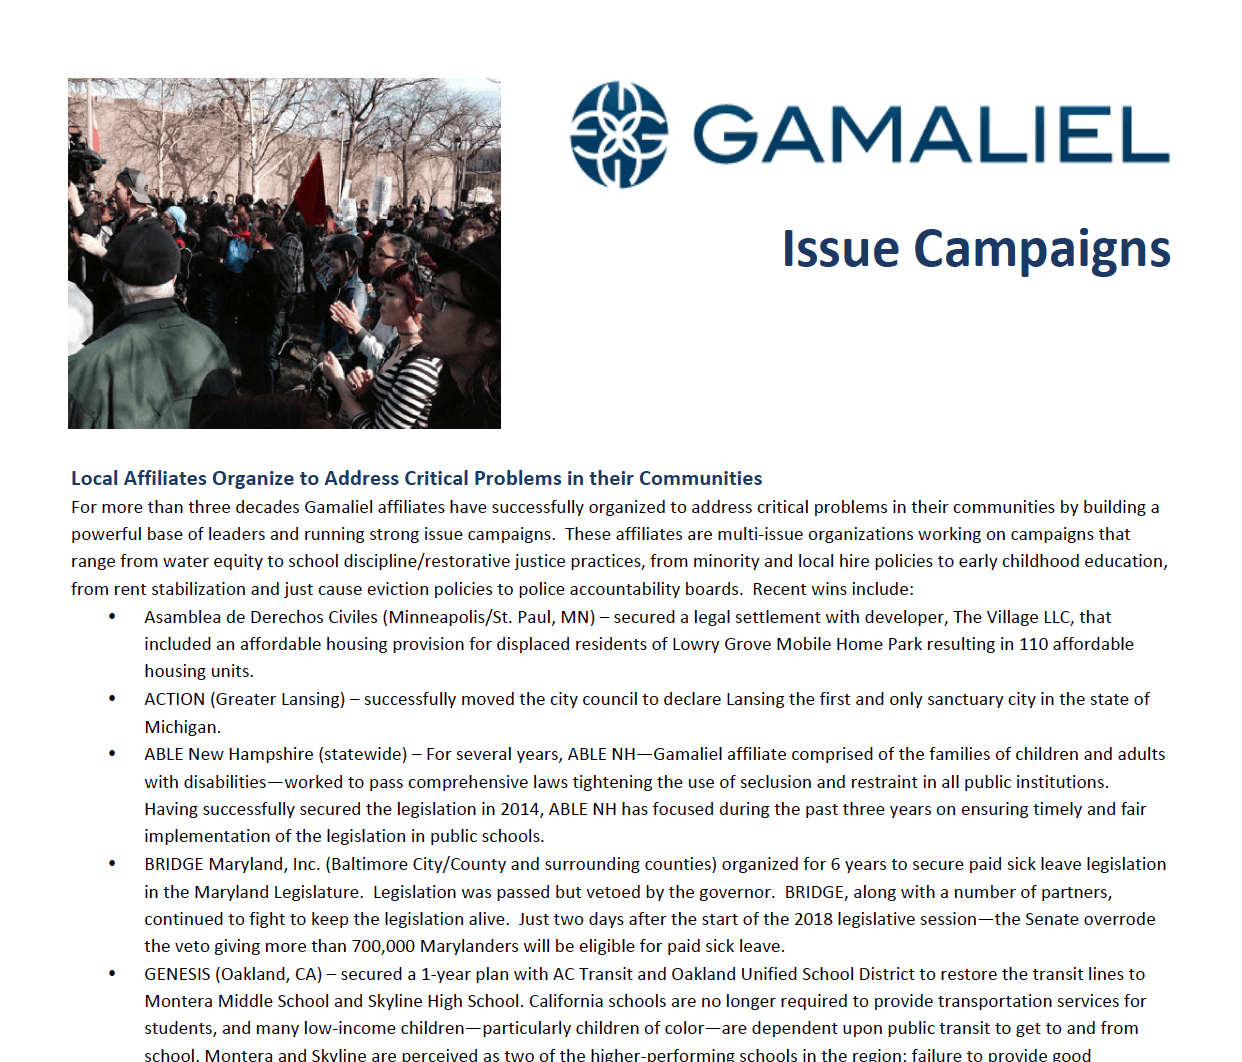 Gamaliel Issue Campaigns